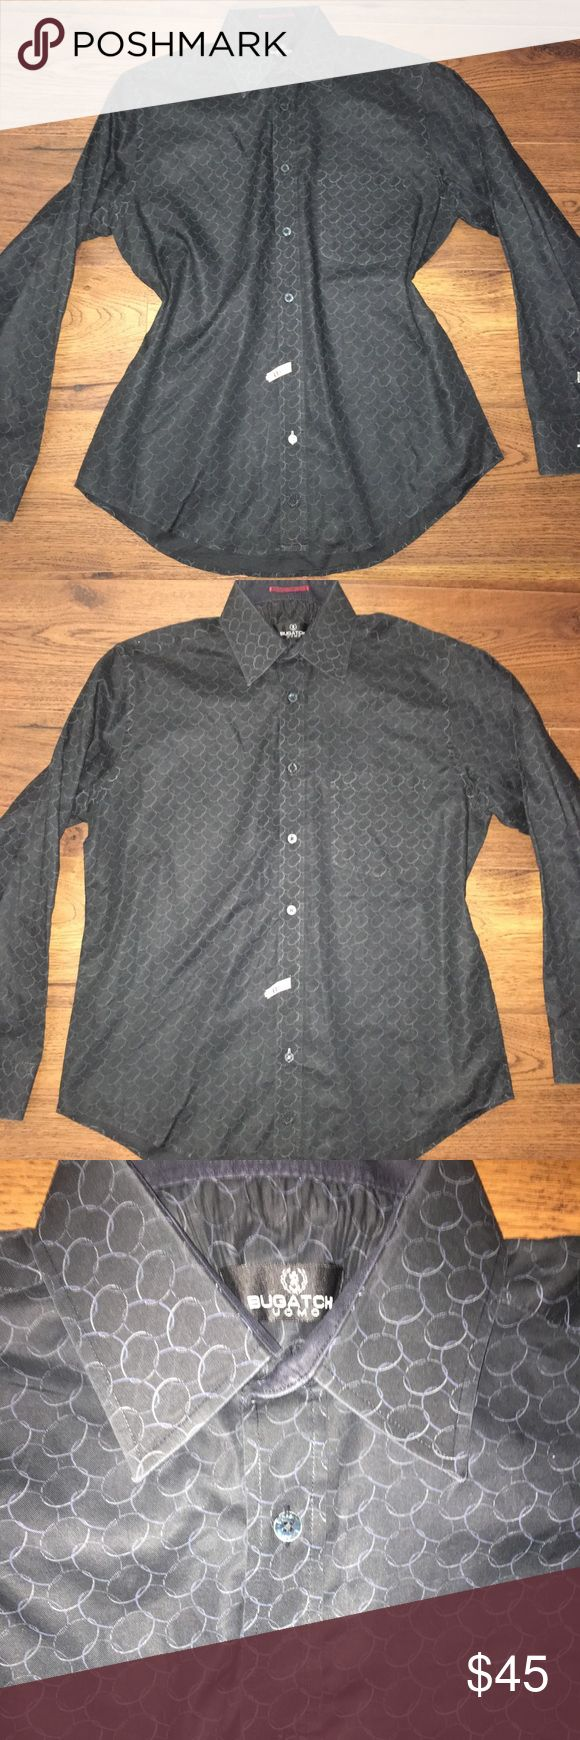 """Men's Bugatchi UOMO Dress Shirt Fresh from the dry cleaners! So crisp and structured. A very well made shirt. Button front. Front pocket. Cotton. Comes with extra buttons. Size Medium. 23"""" armpit to armpit. 22.5"""" across at waist laying flat. Aprox 29"""" long from shoulder. Sleeve is 24"""" long from shoulder. The circle design is a light blue/gray color. Please see my other men's listings. BUNDLE & SAVE 20%!! Bugatchi Shirts Dress Shirts"""